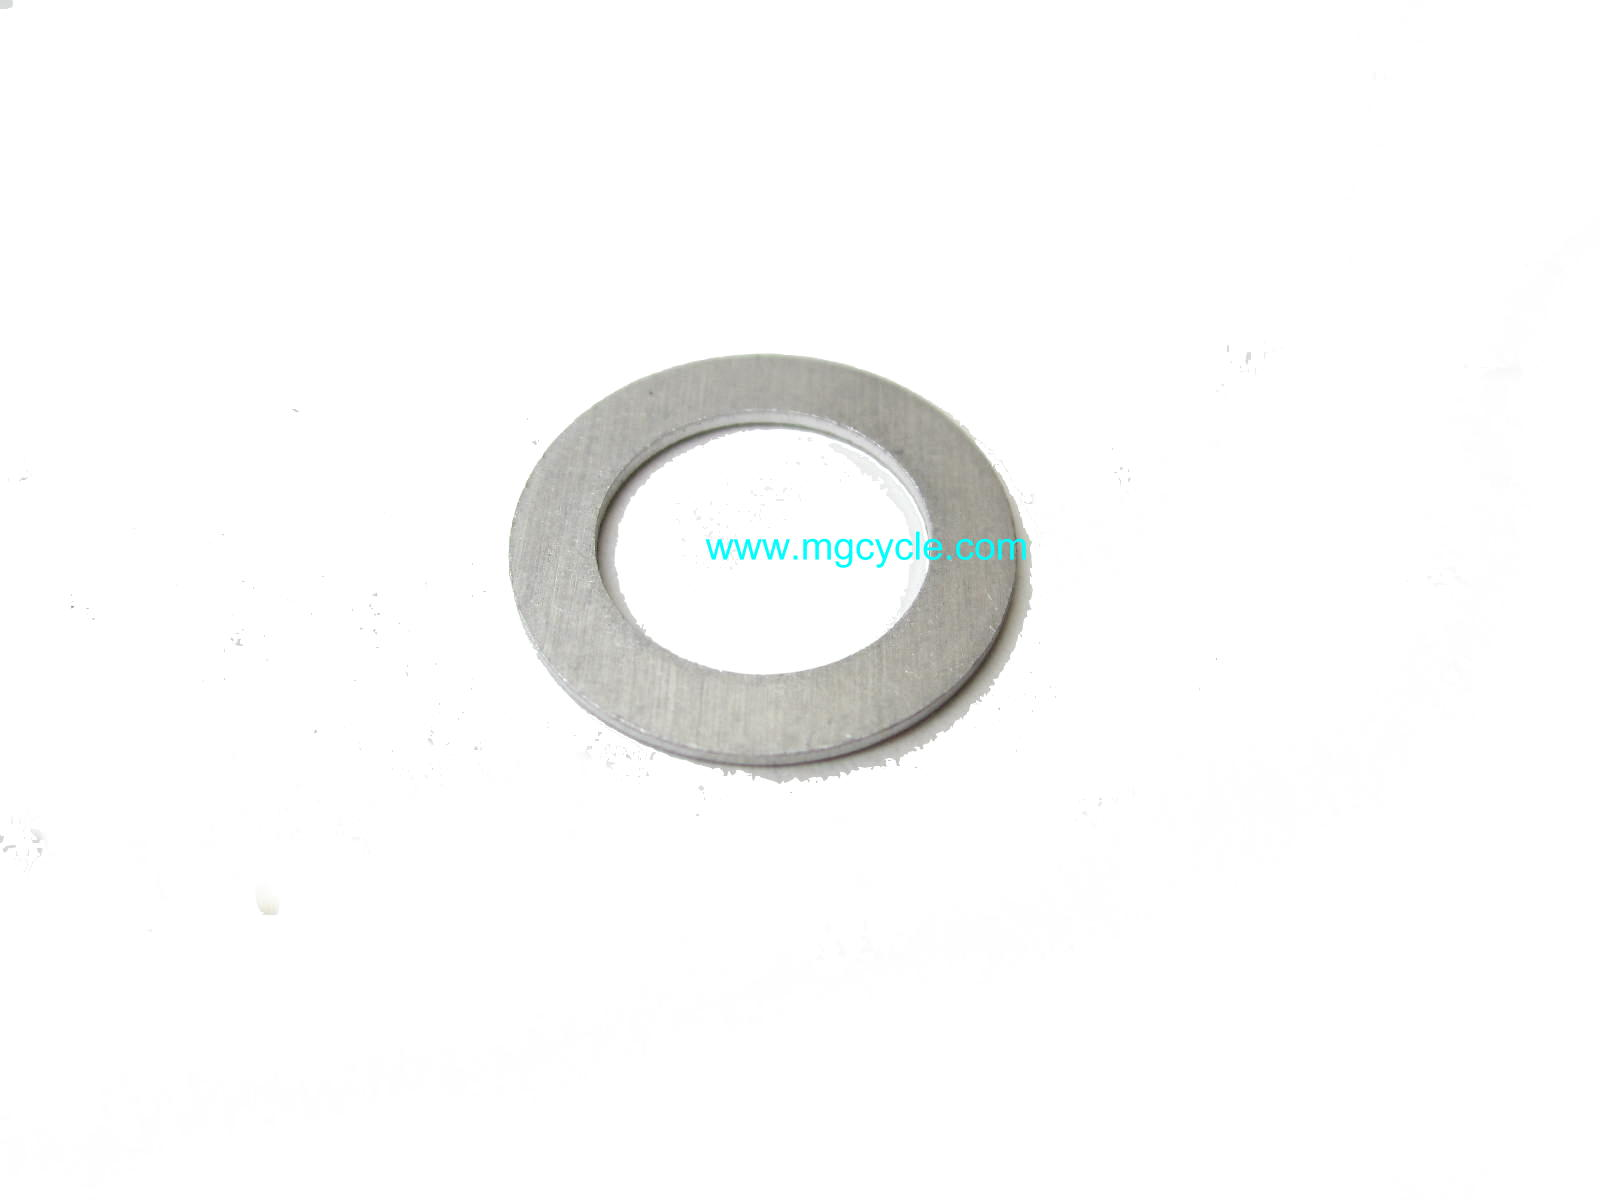 14.5mm ID crush washer,V7 series, Convert, V11fuel filter nipple